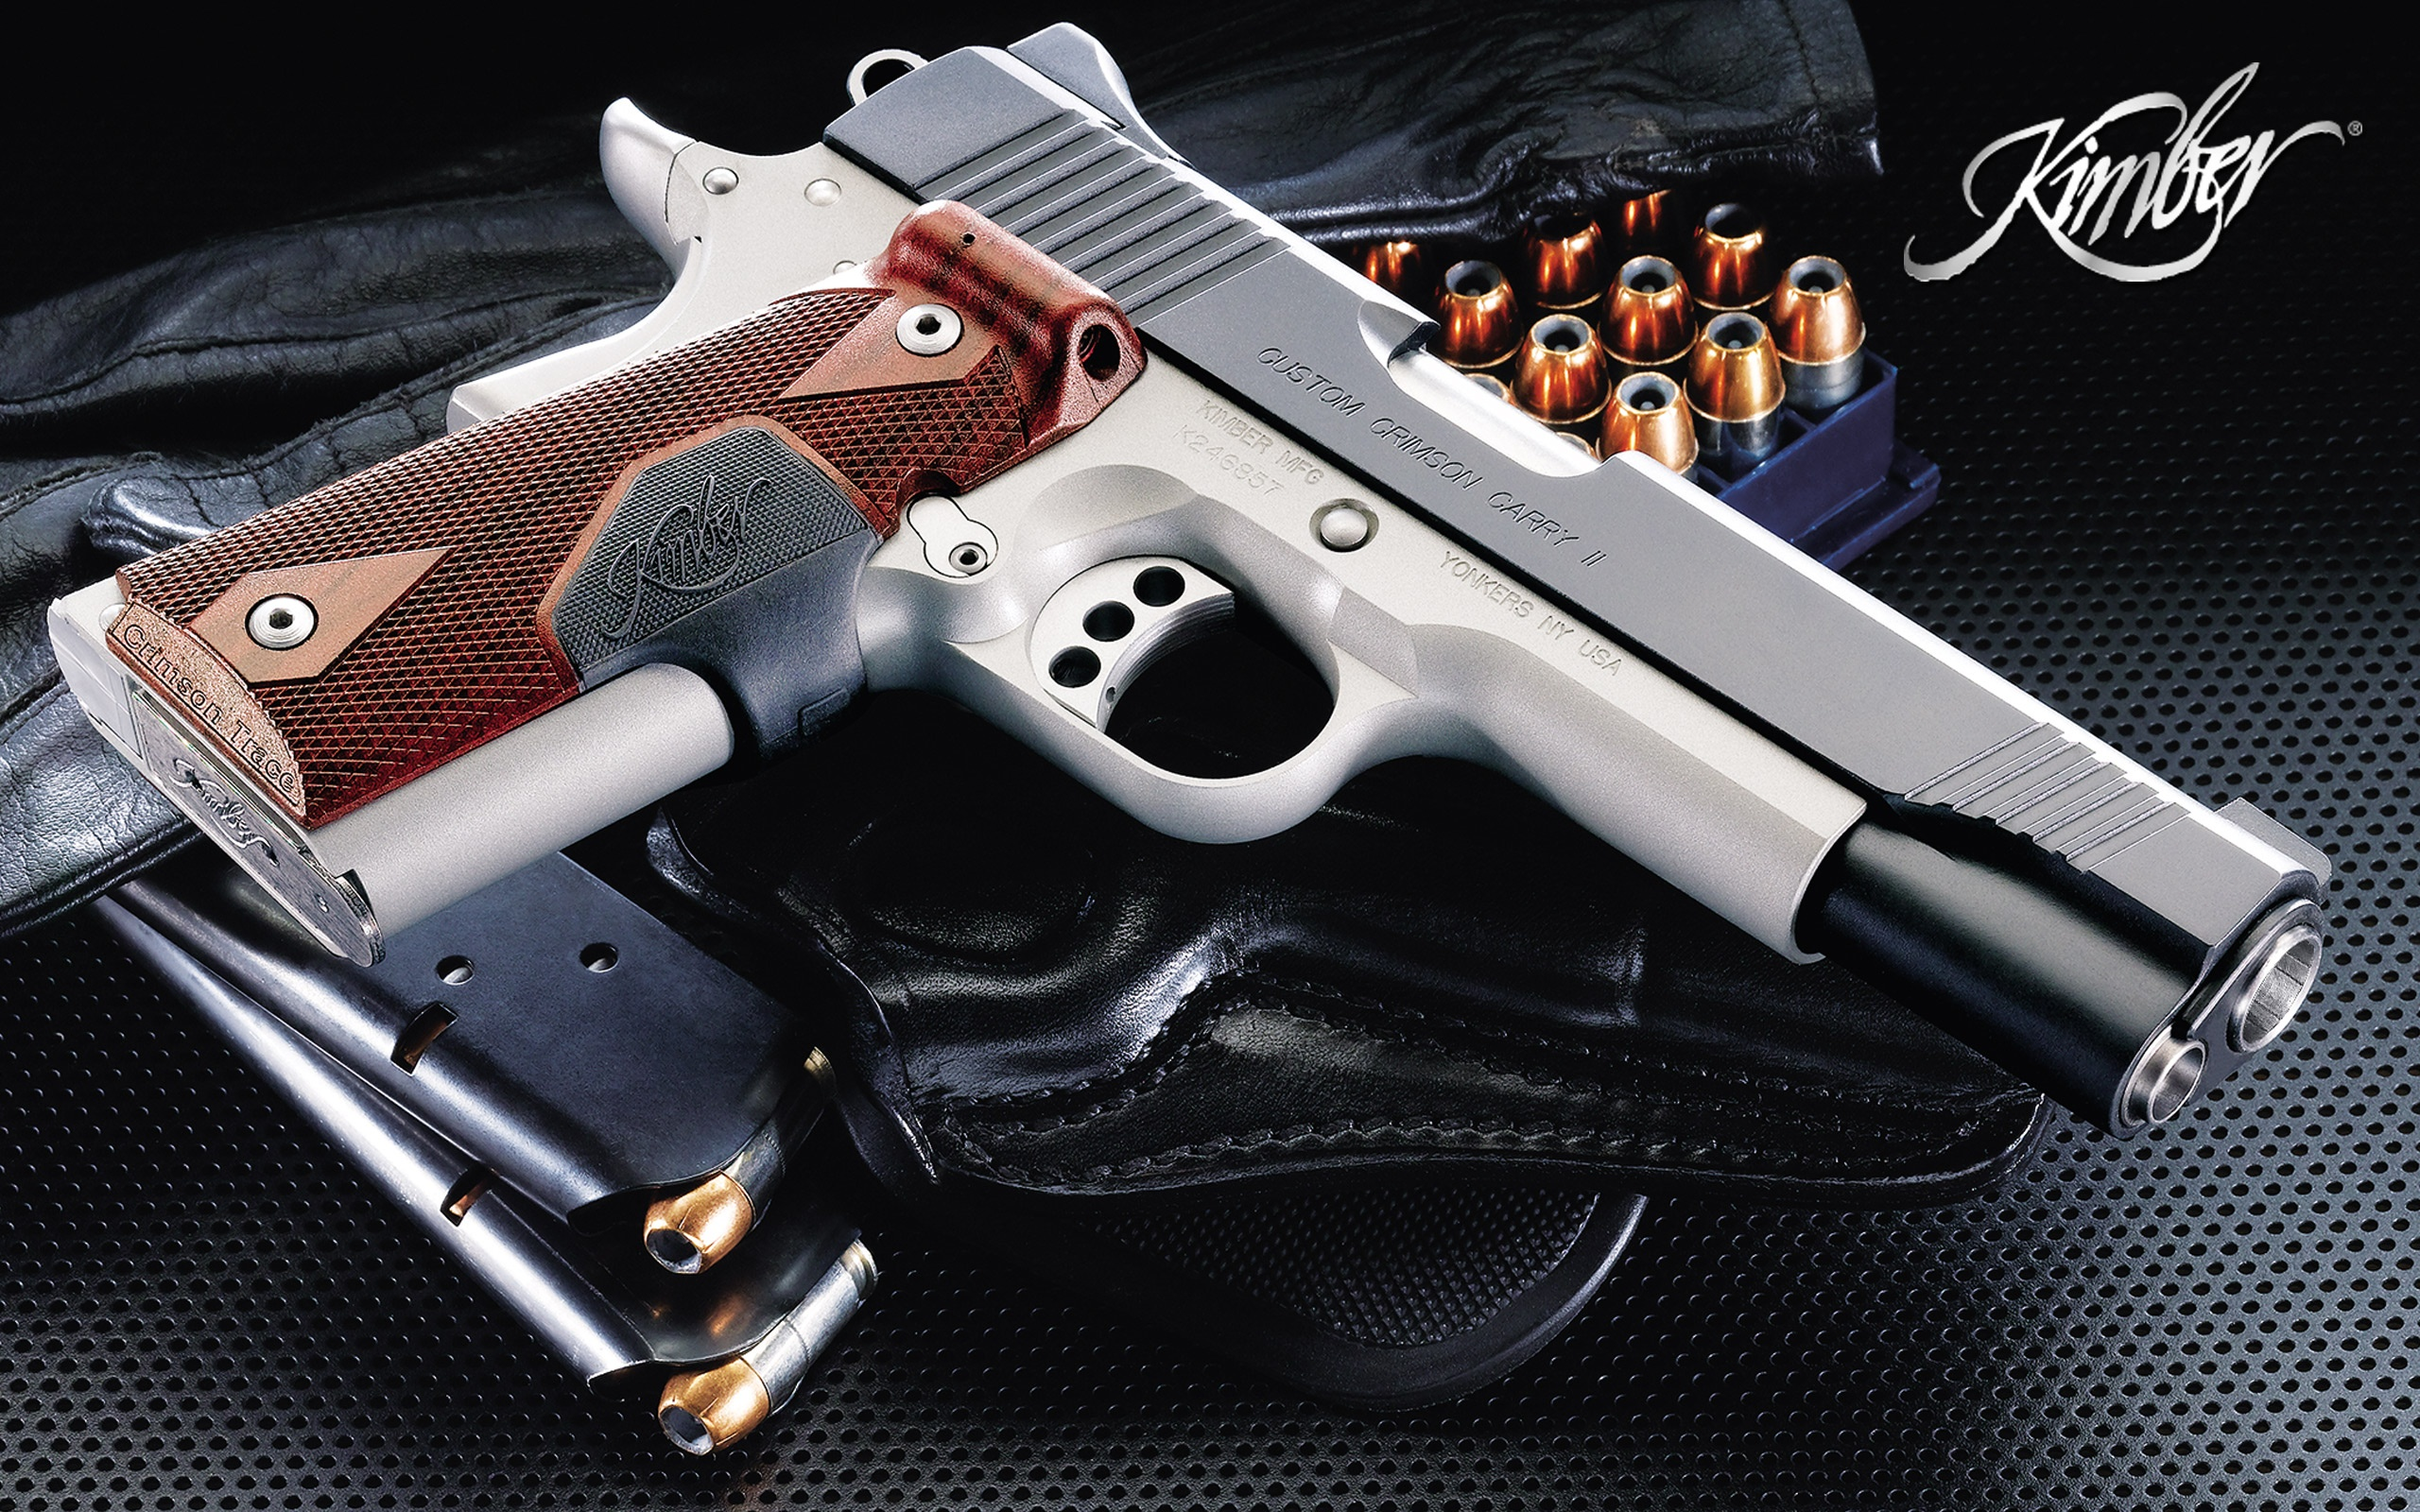 Kimber Pistol Full HD Wallpaper And Background Image